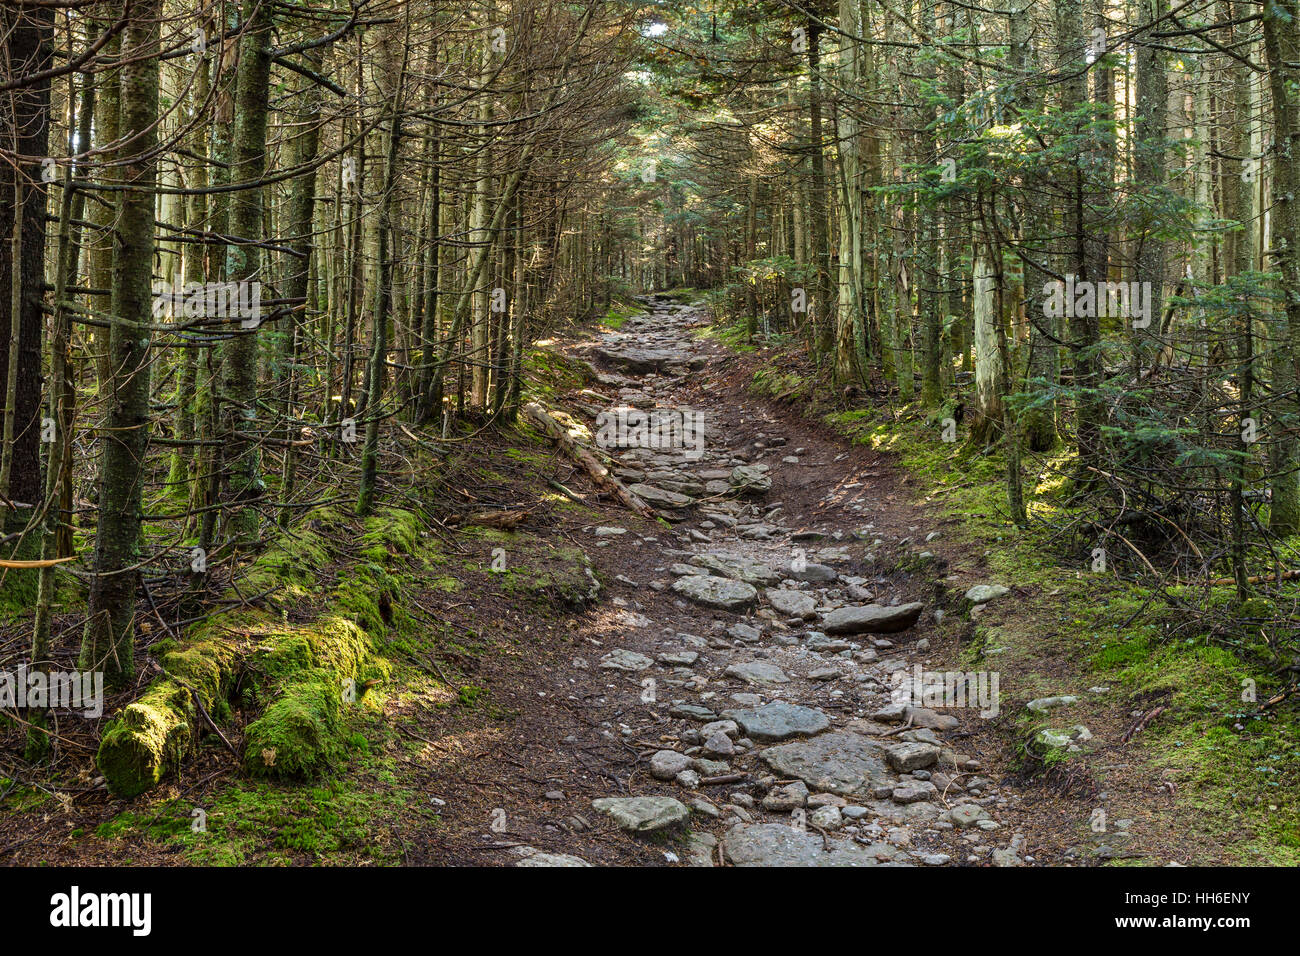 A rocky path through hardwood forest on the trail to Slide Mountain in the Catskills Mountains of New York. - Stock Image